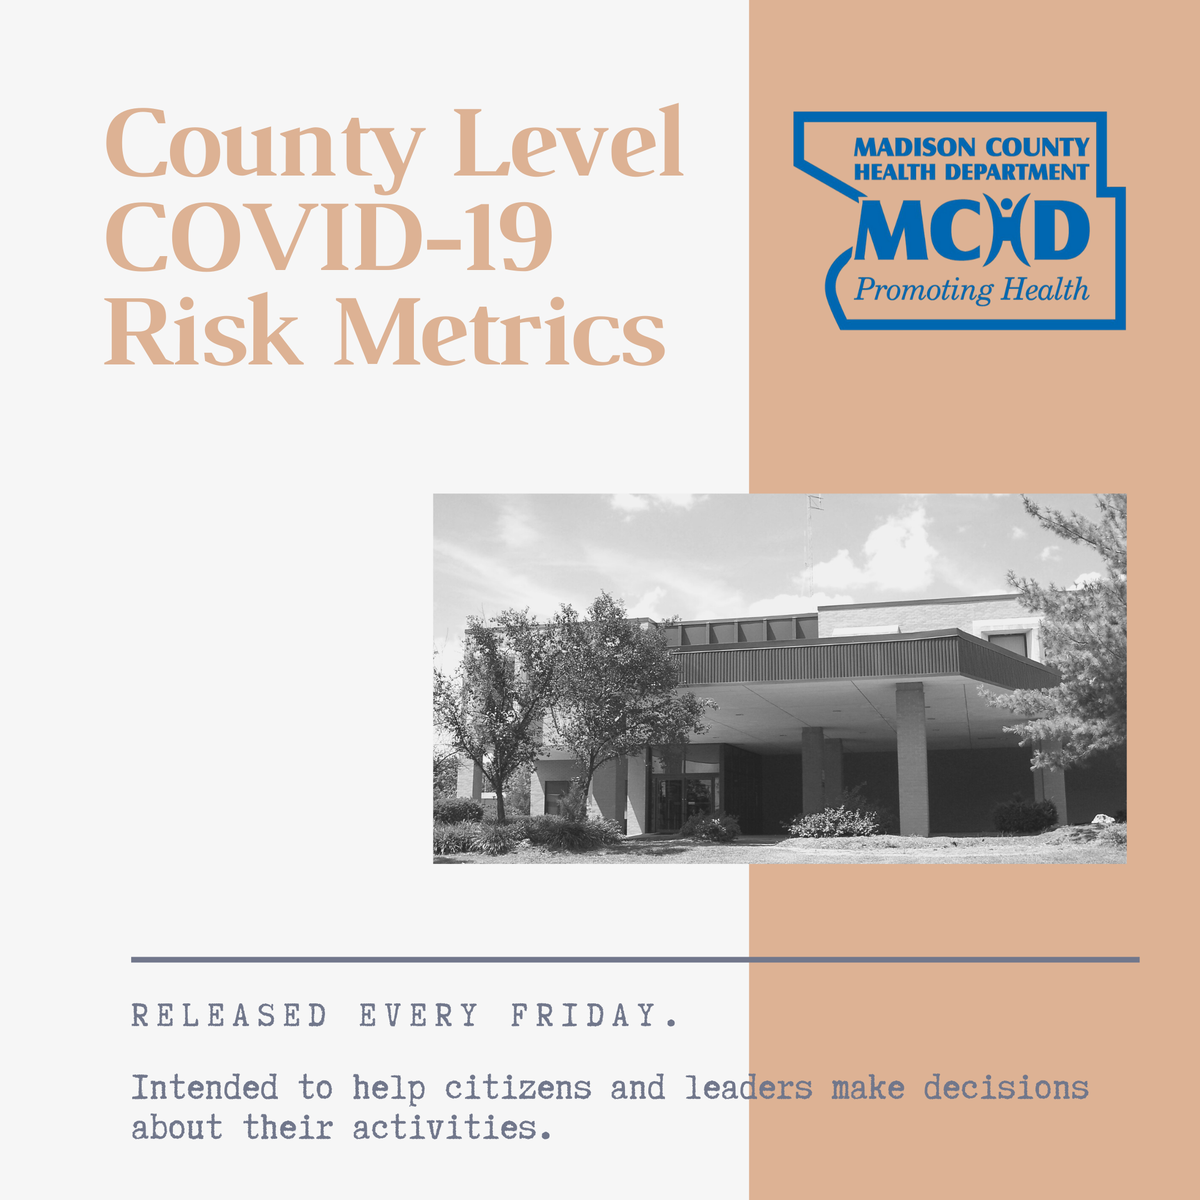 For the 3rd week in a row, we are in a Warning Zone for 1 of the 8 Metrics which is Cases per 100,000 population. It is imperative that everyone practices the 3Ws, sanitizes, and avoids large gatherings.   Weekly County Level COVID-19 Risk Metrics visit: